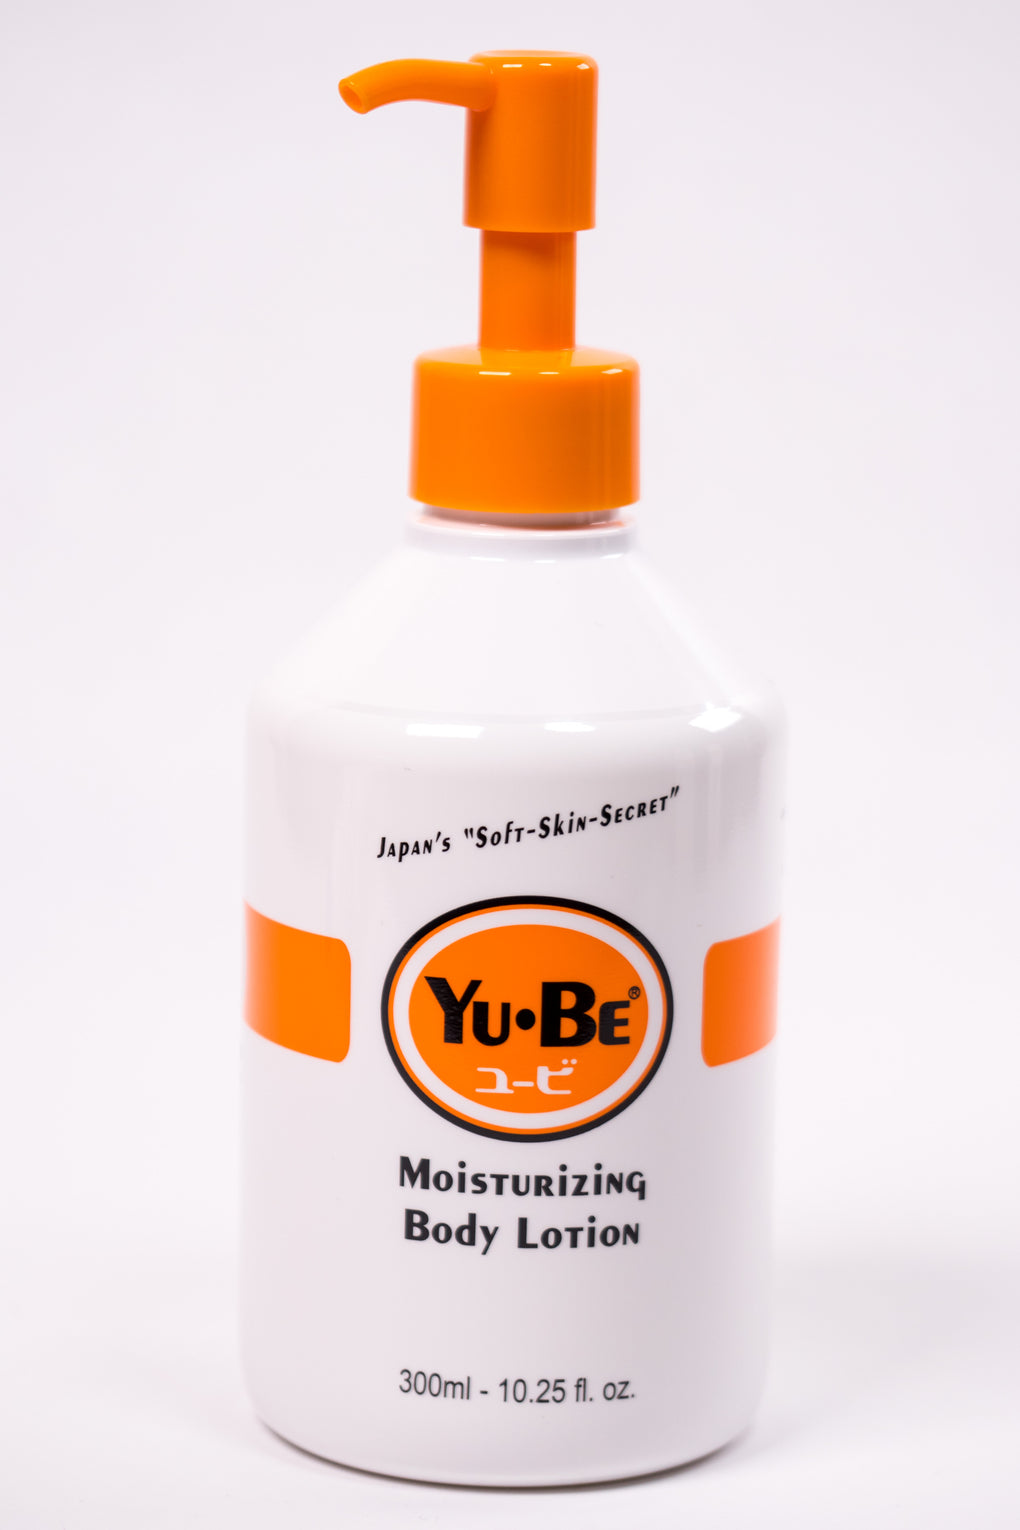 Yu-Be Moisturizing Body Lotion at Consigliere